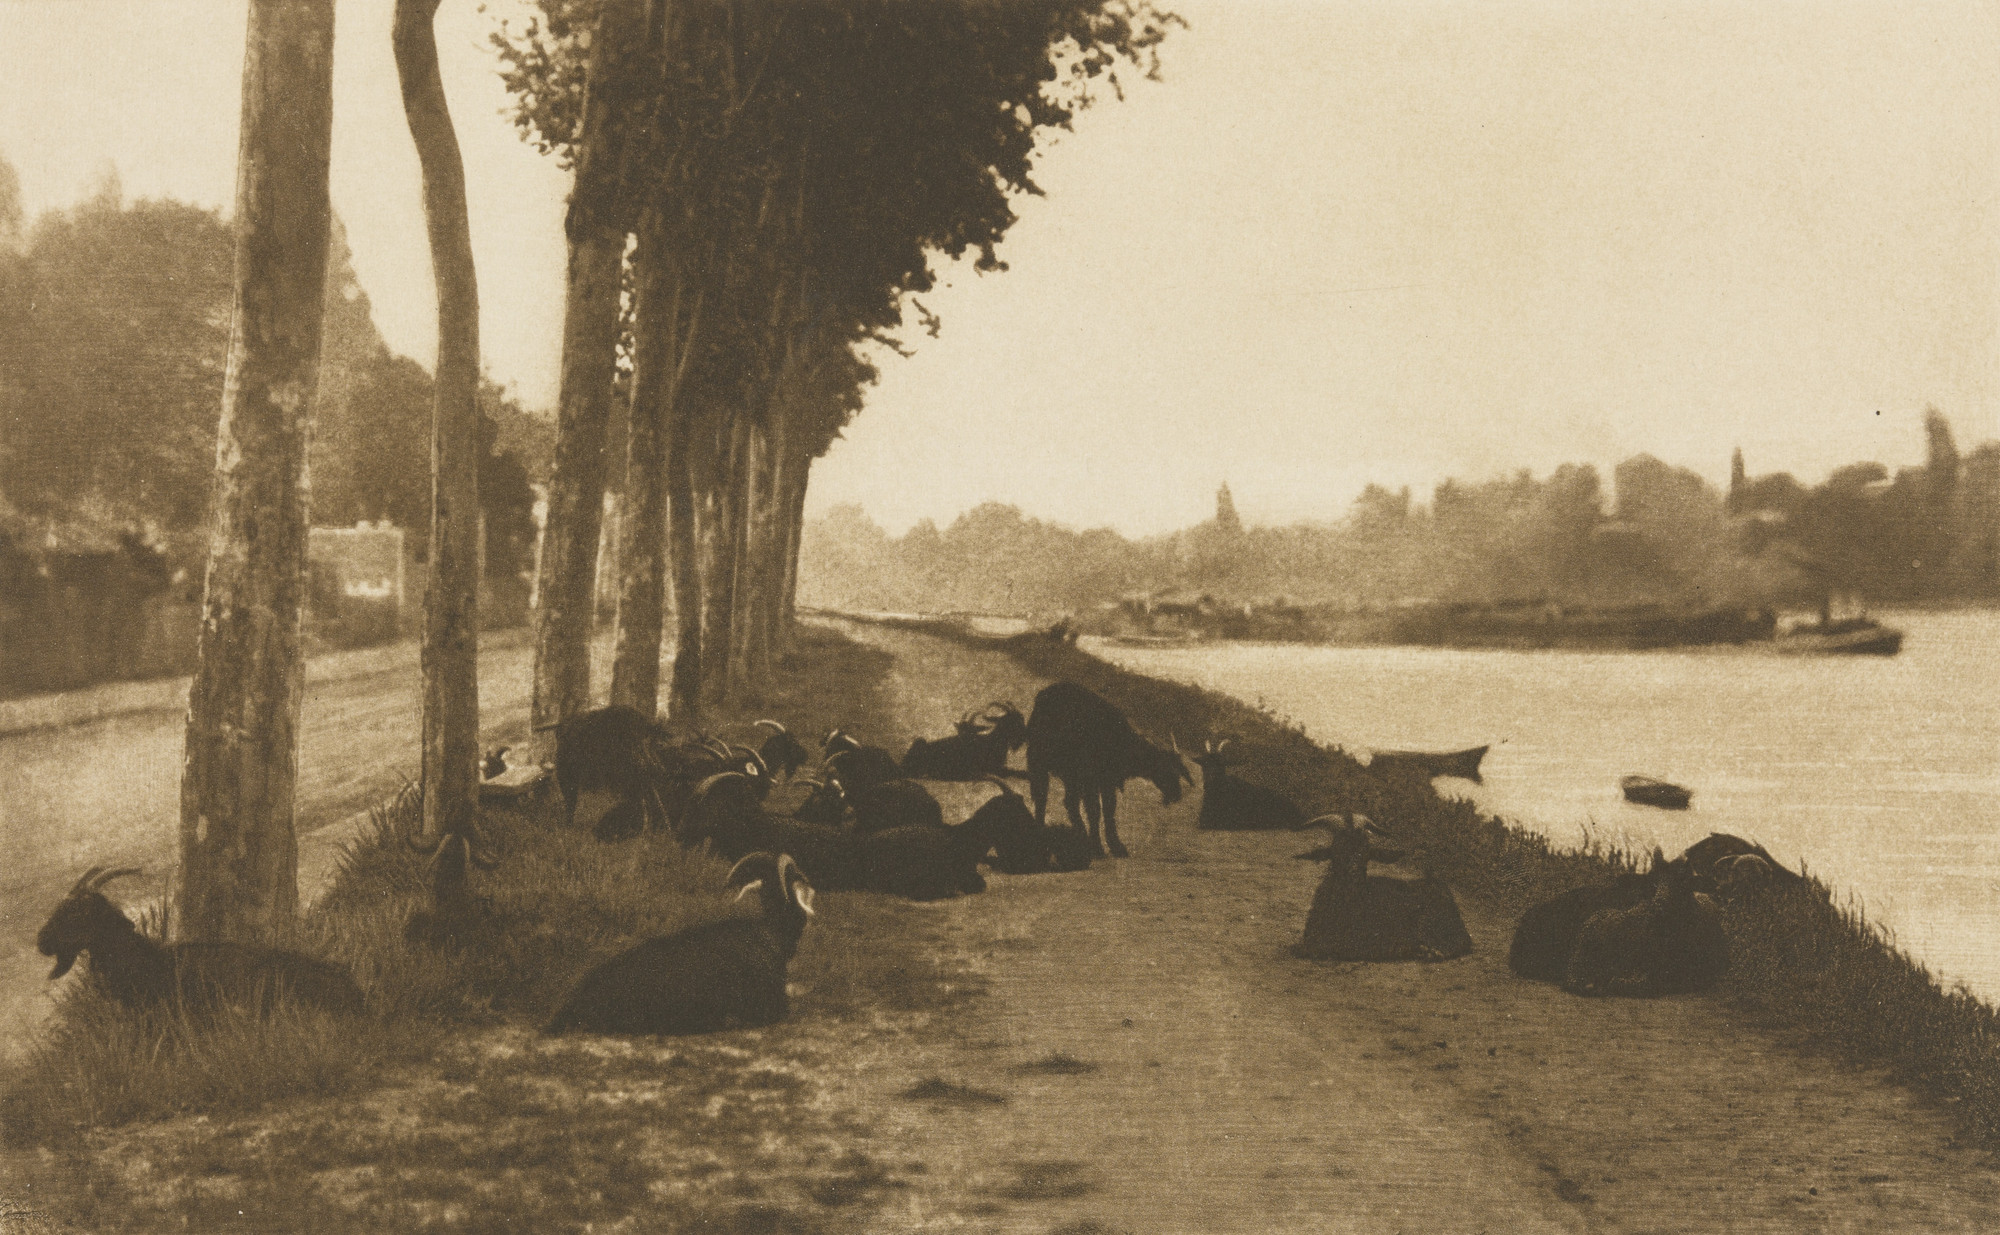 Alfred Stieglitz. On the Seine, near Paris. 1894